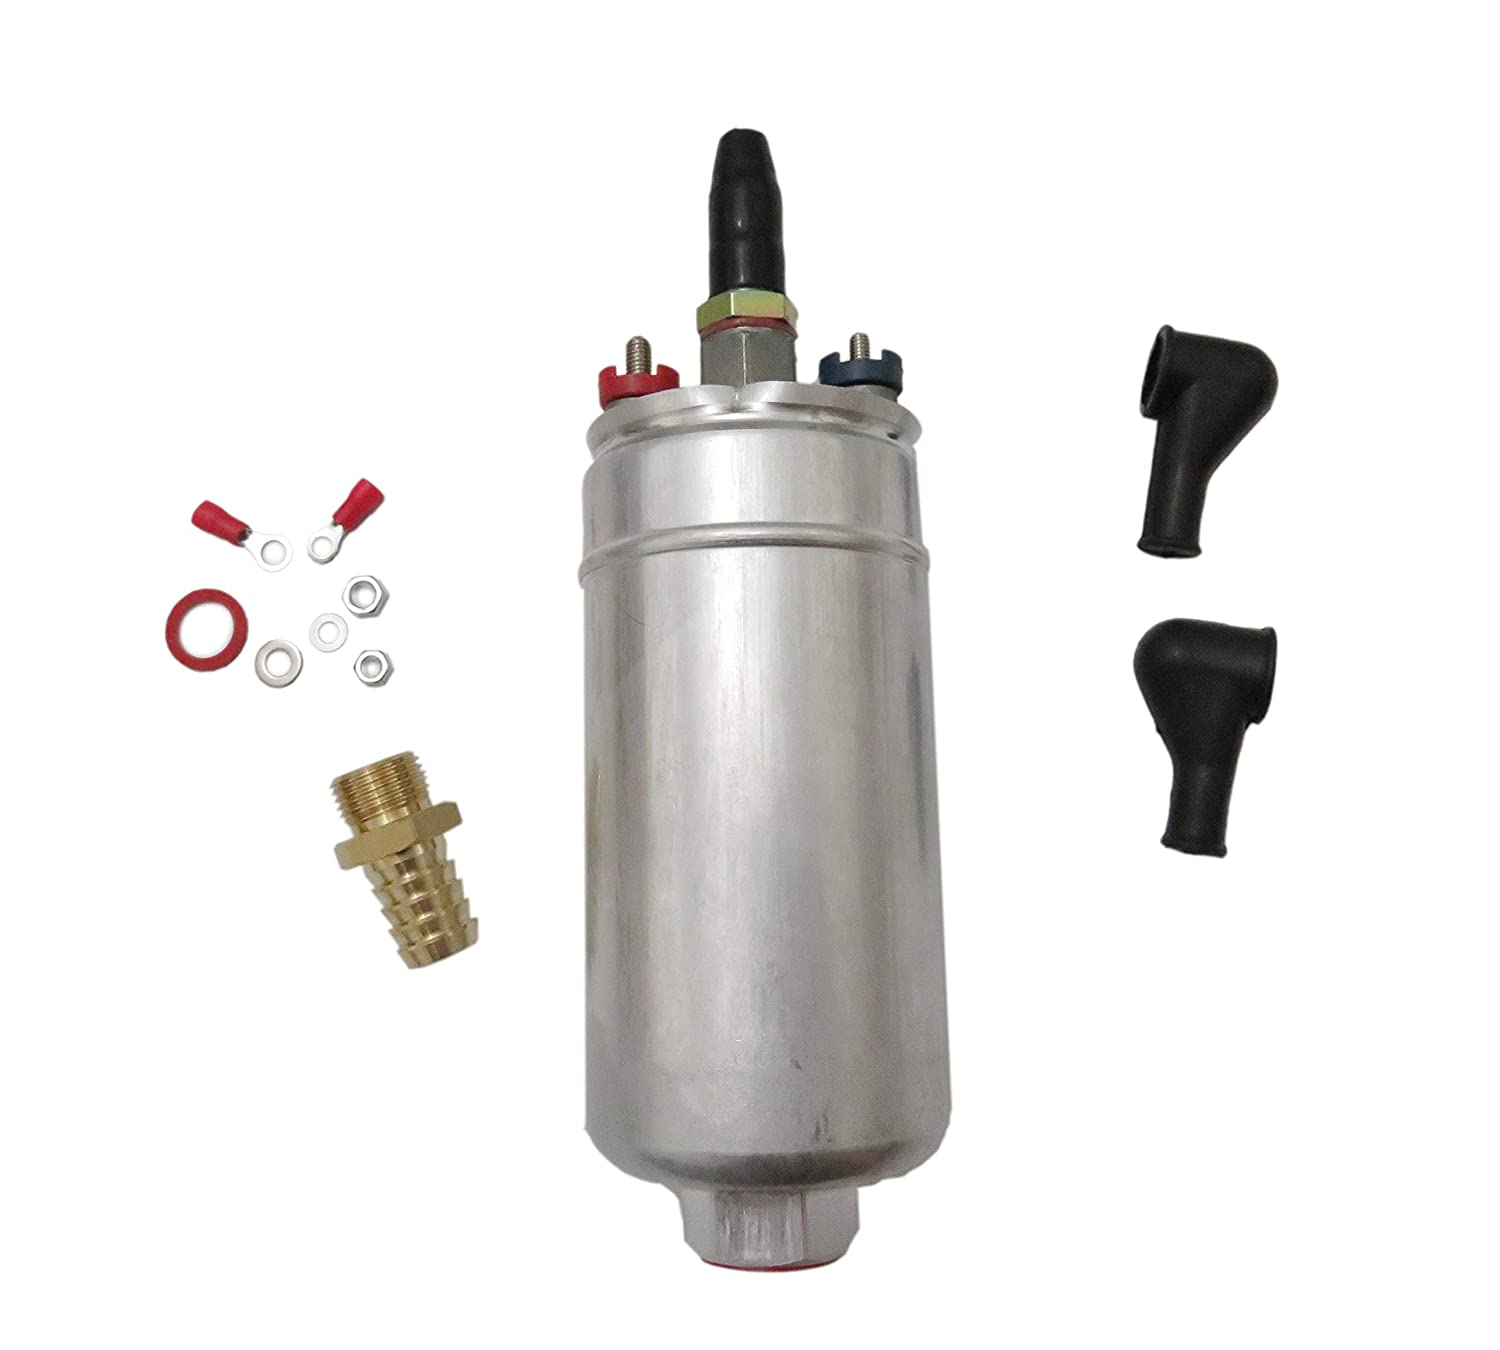 External Inline Fuel Pump For Bosch 044 0580254044 300LPH Universal